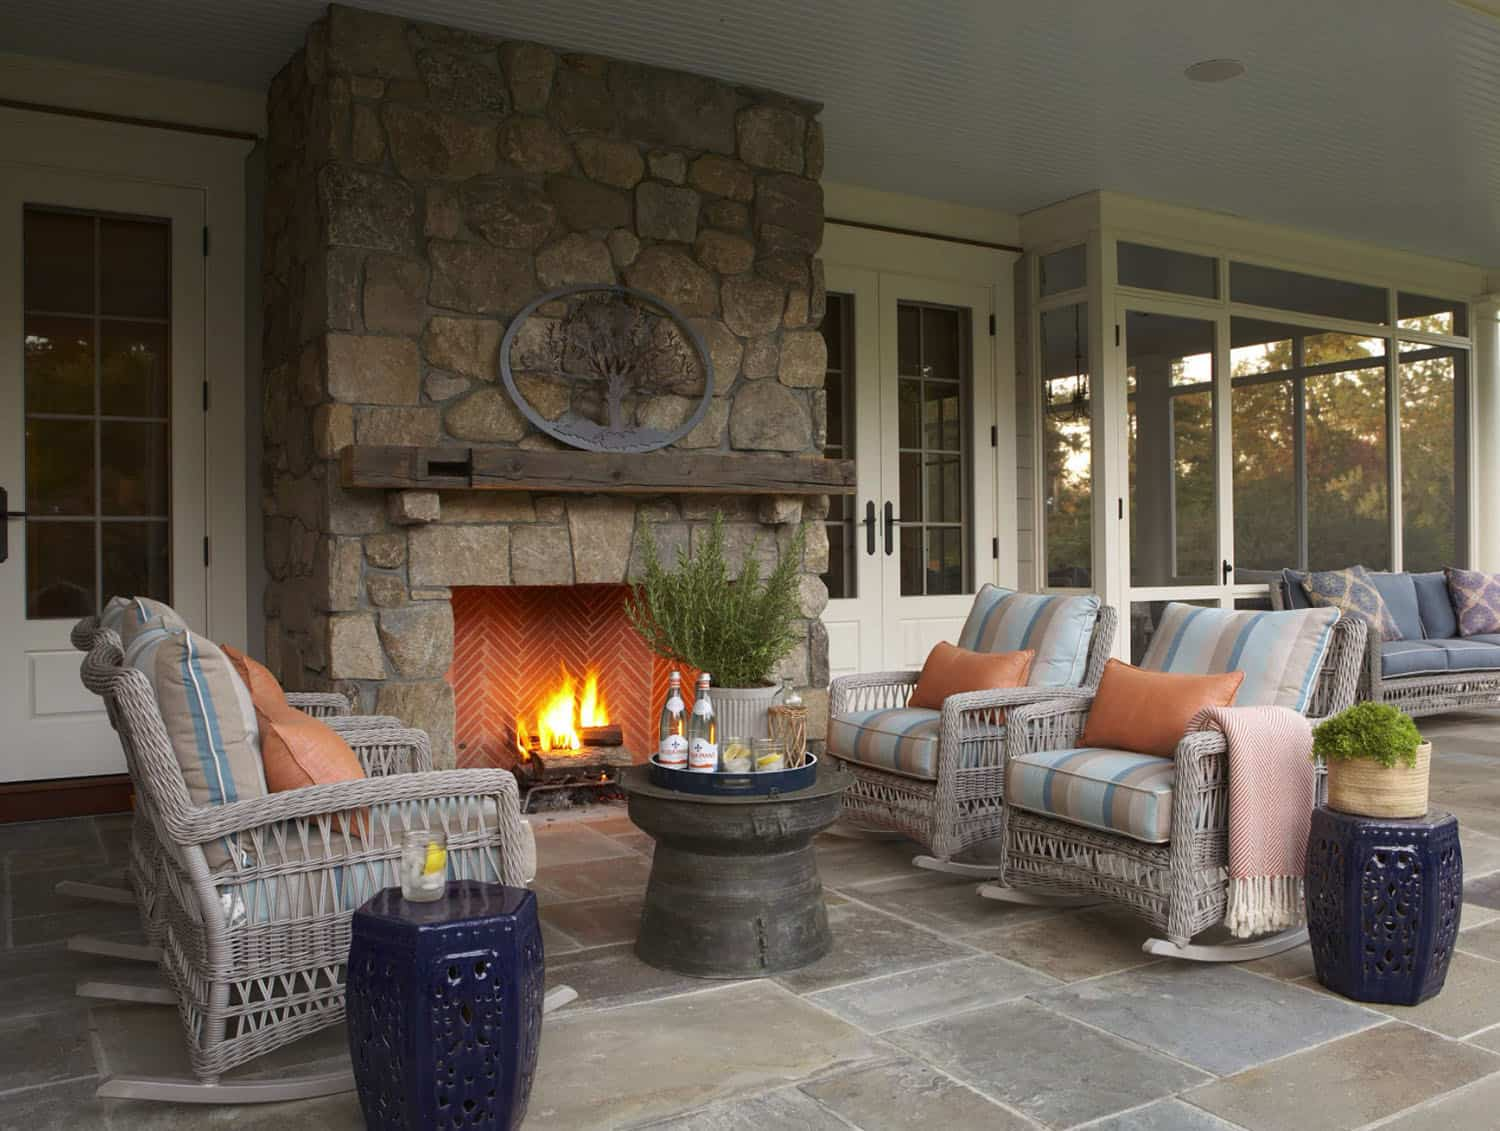 covered-porch-with-exterior-fireplace-traditional